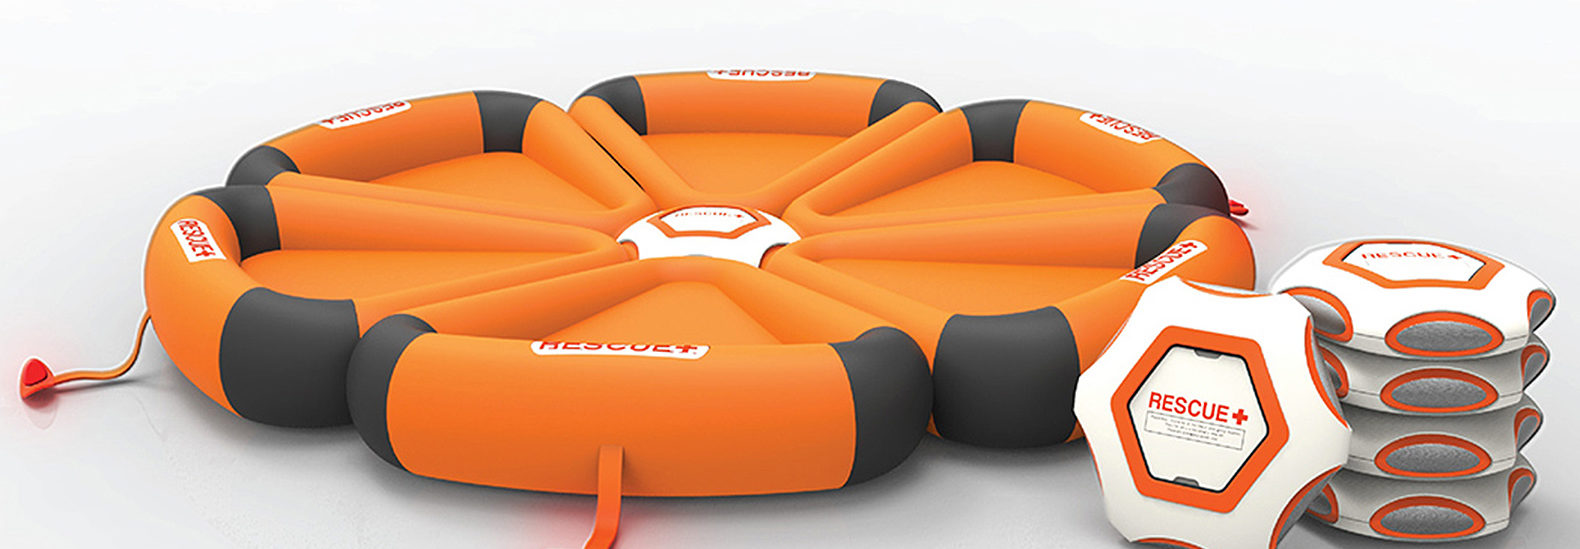 Self-inflating HEXA raft automatically deploys upon contact